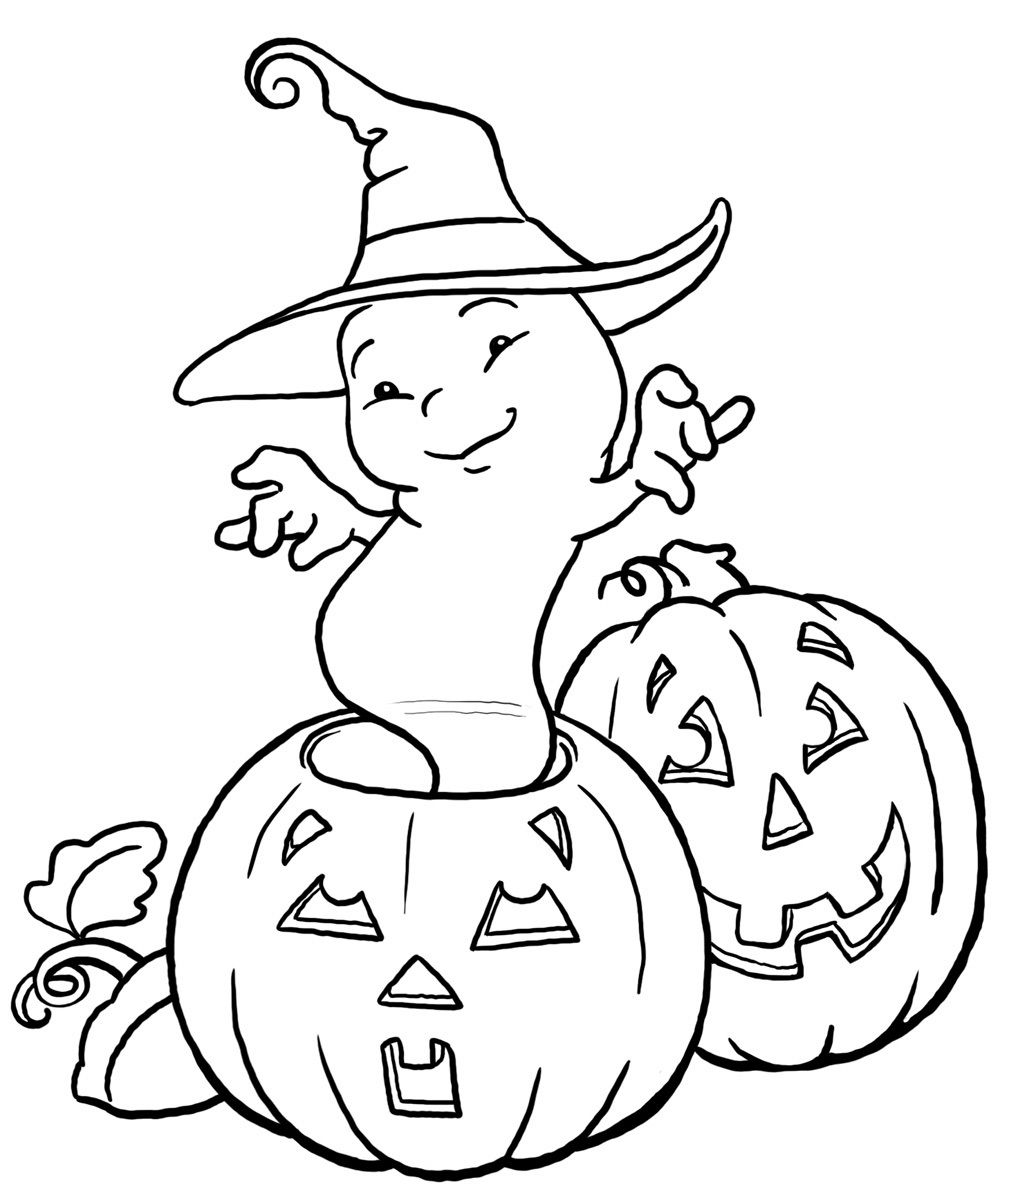 Free Printable Ghost Coloring Pages For Kids Halloween Coloring